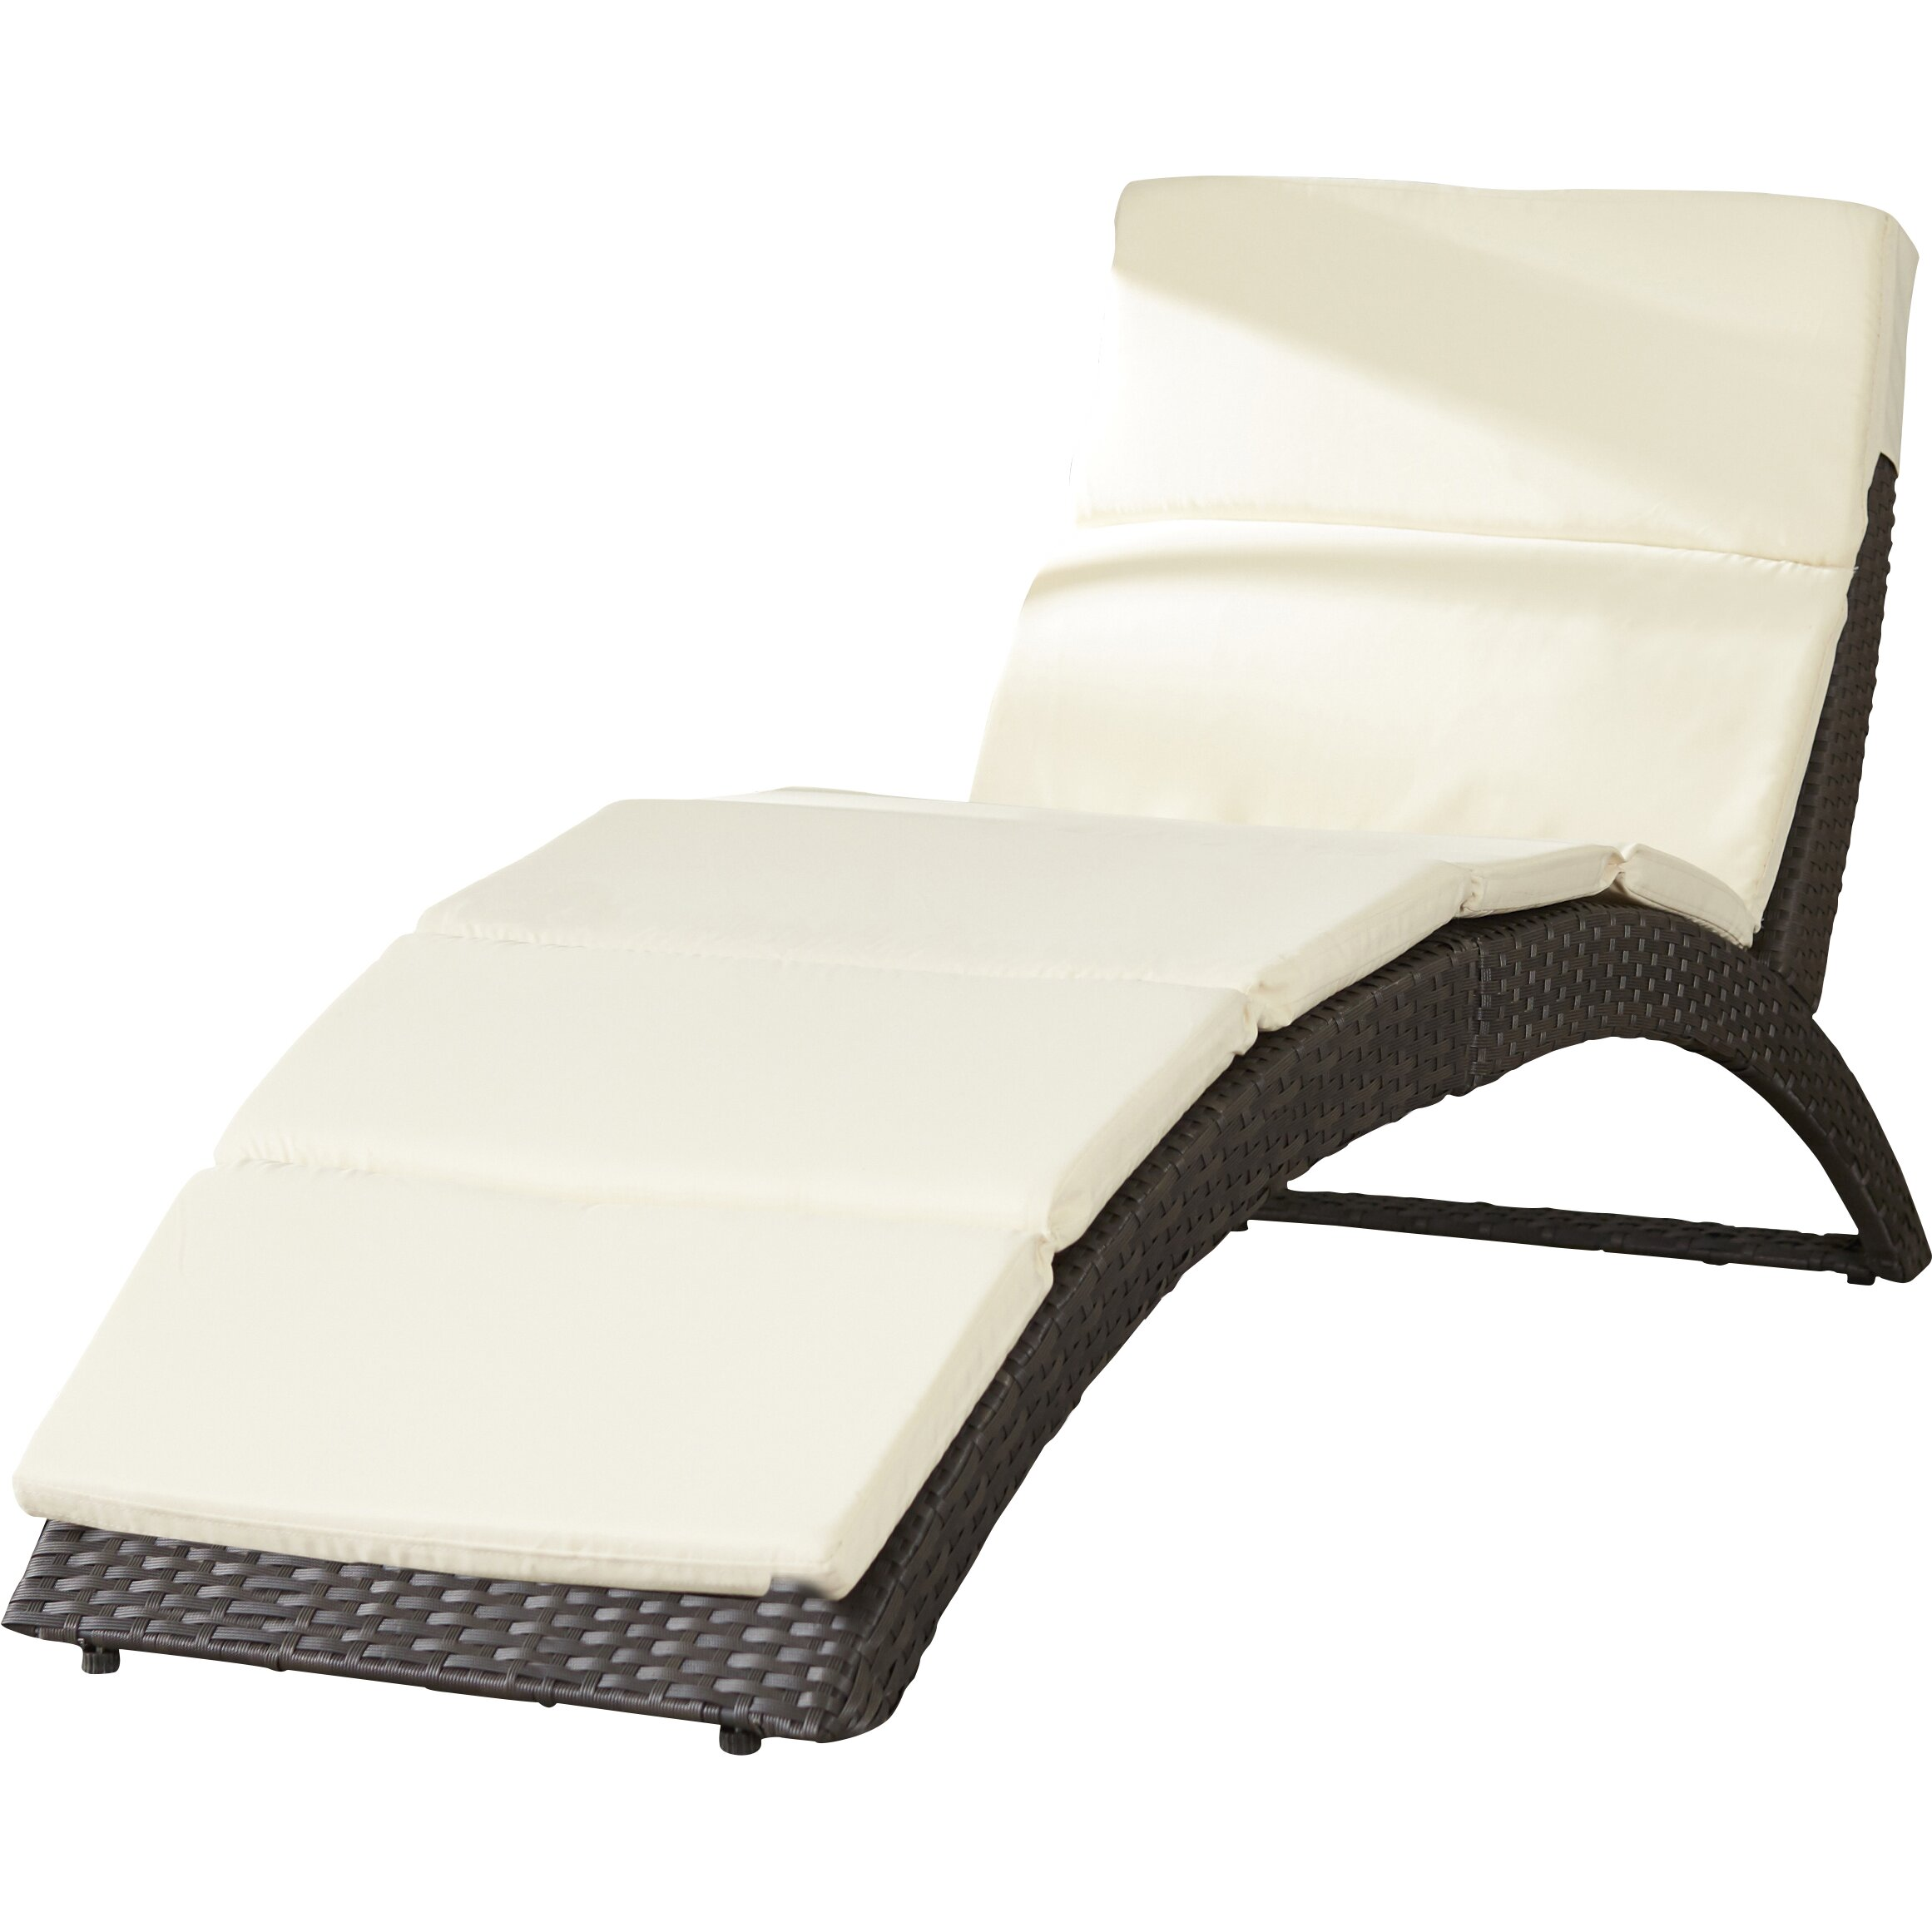 Wade logan johnathan chaise lounge with cushion reviews for Chaise longue cushion